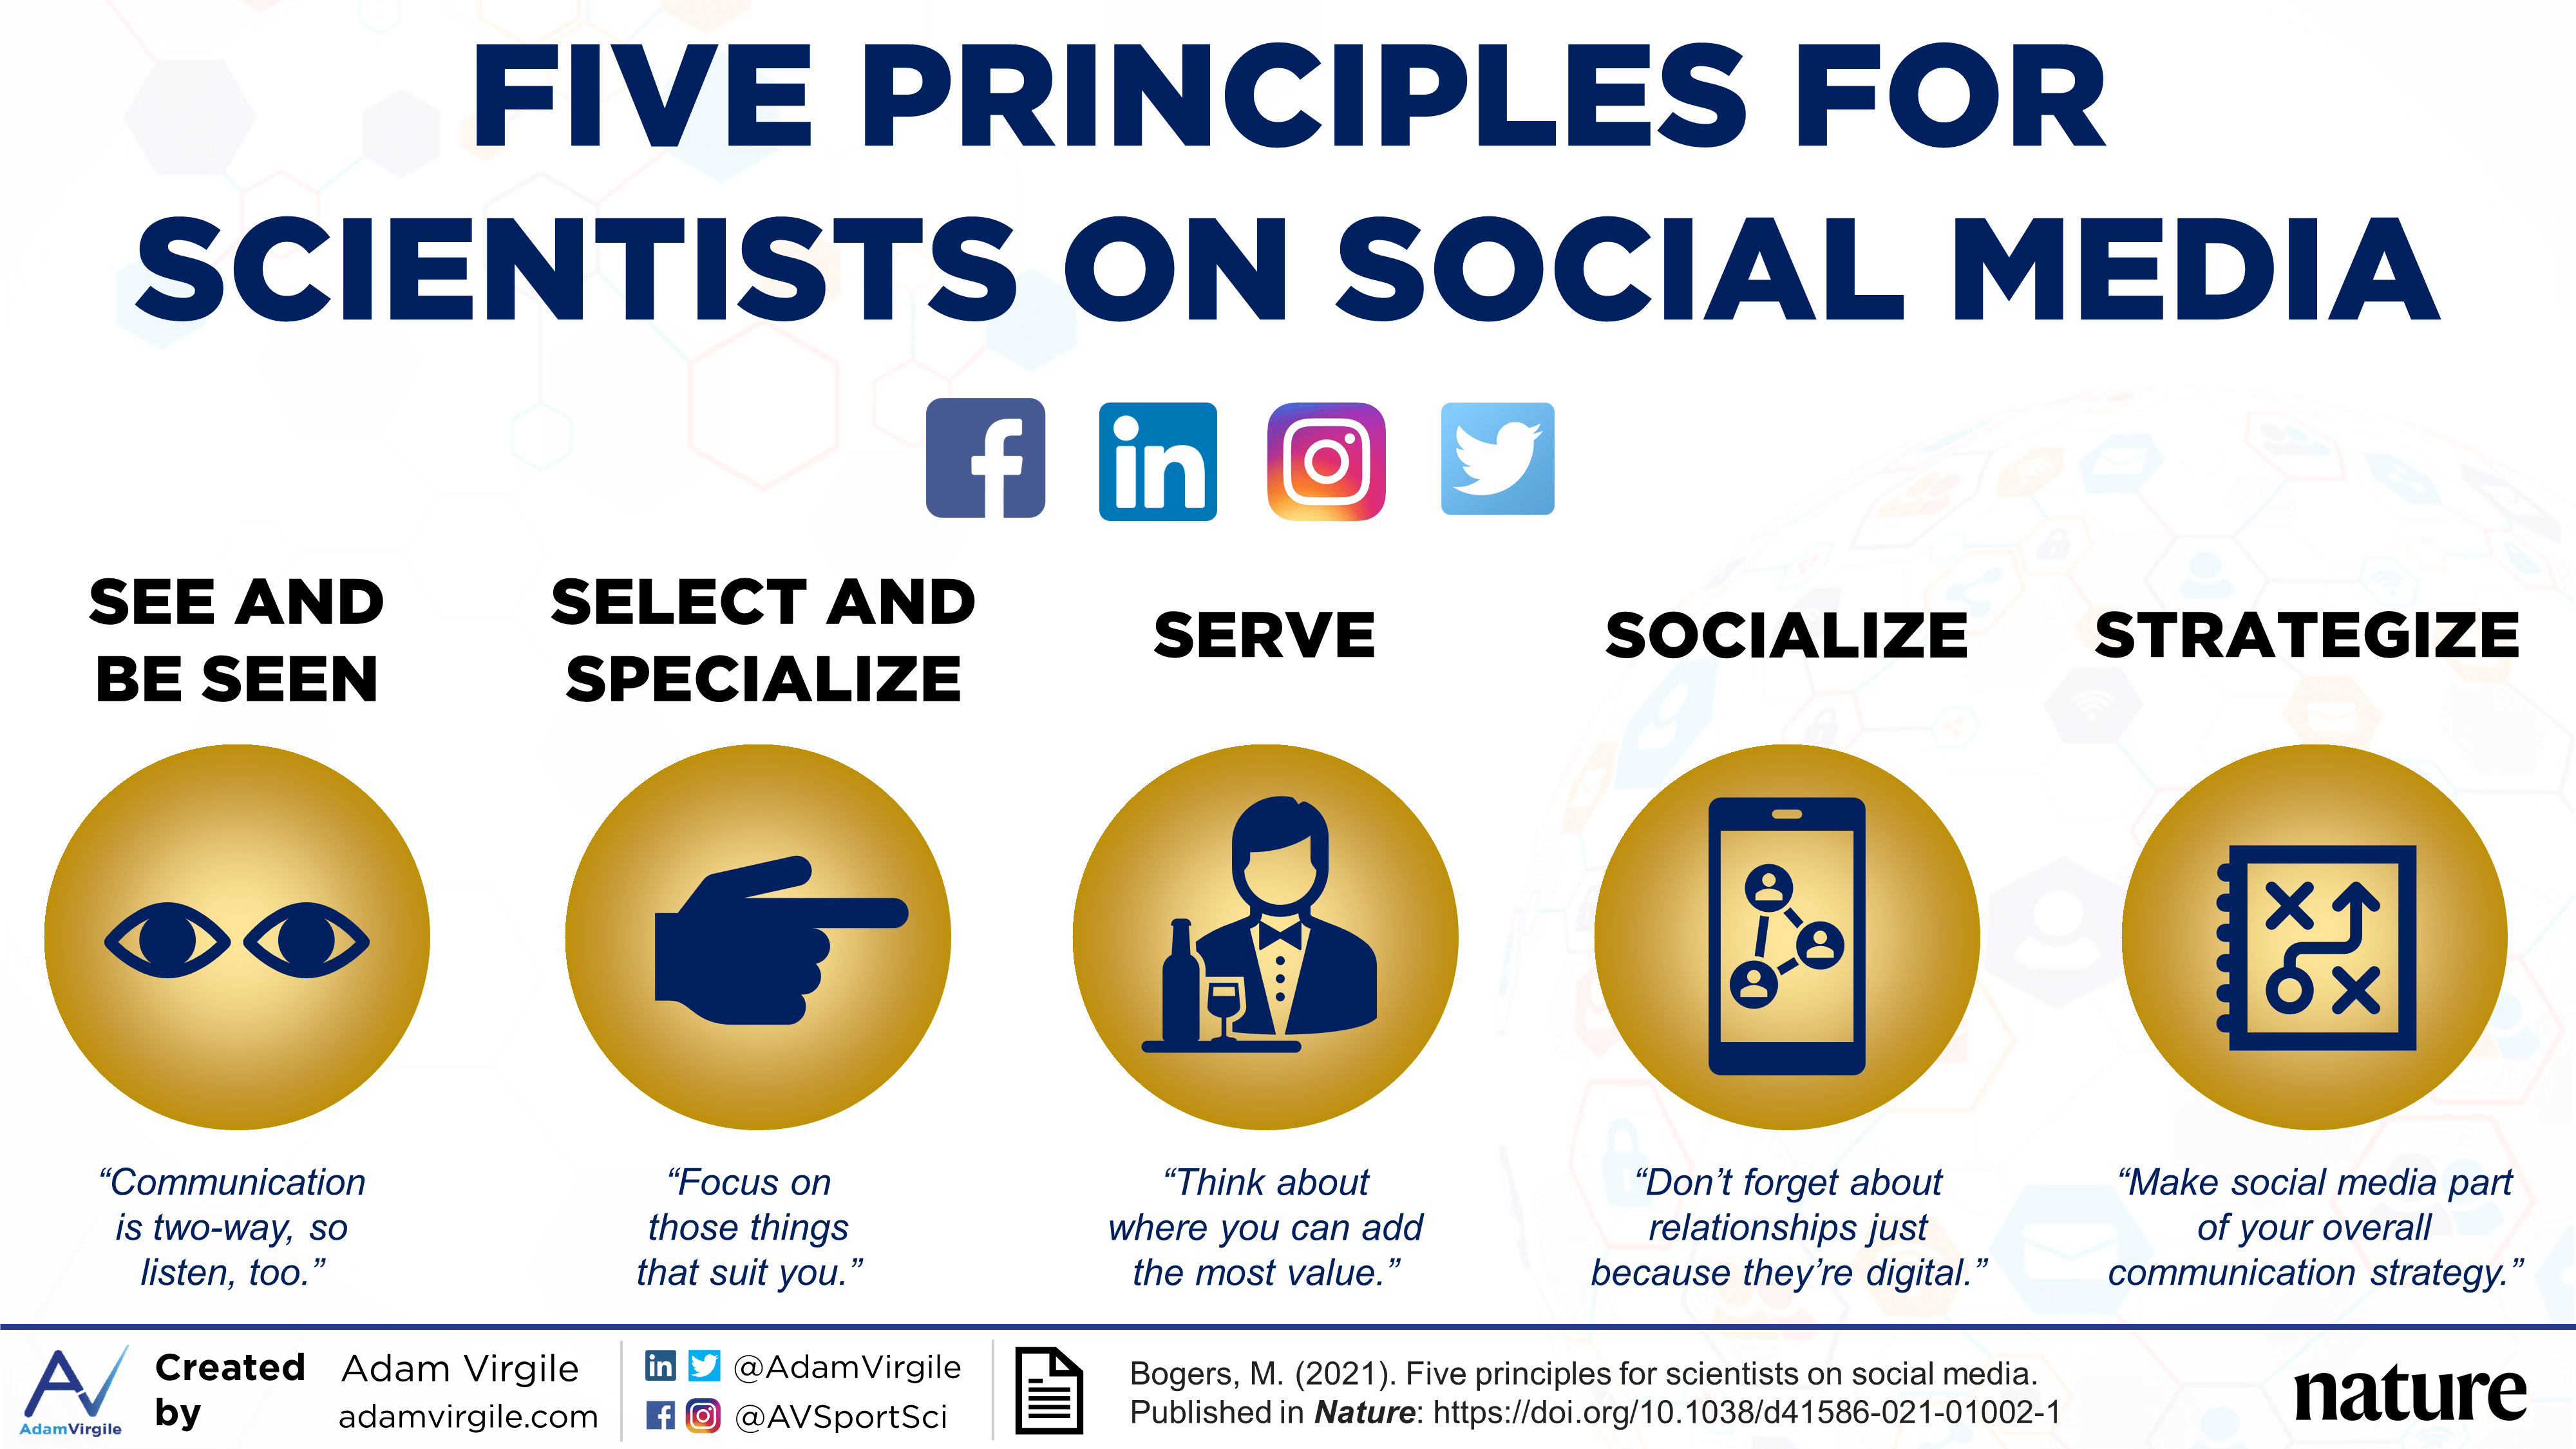 Five Principles for Scientists on Social Media